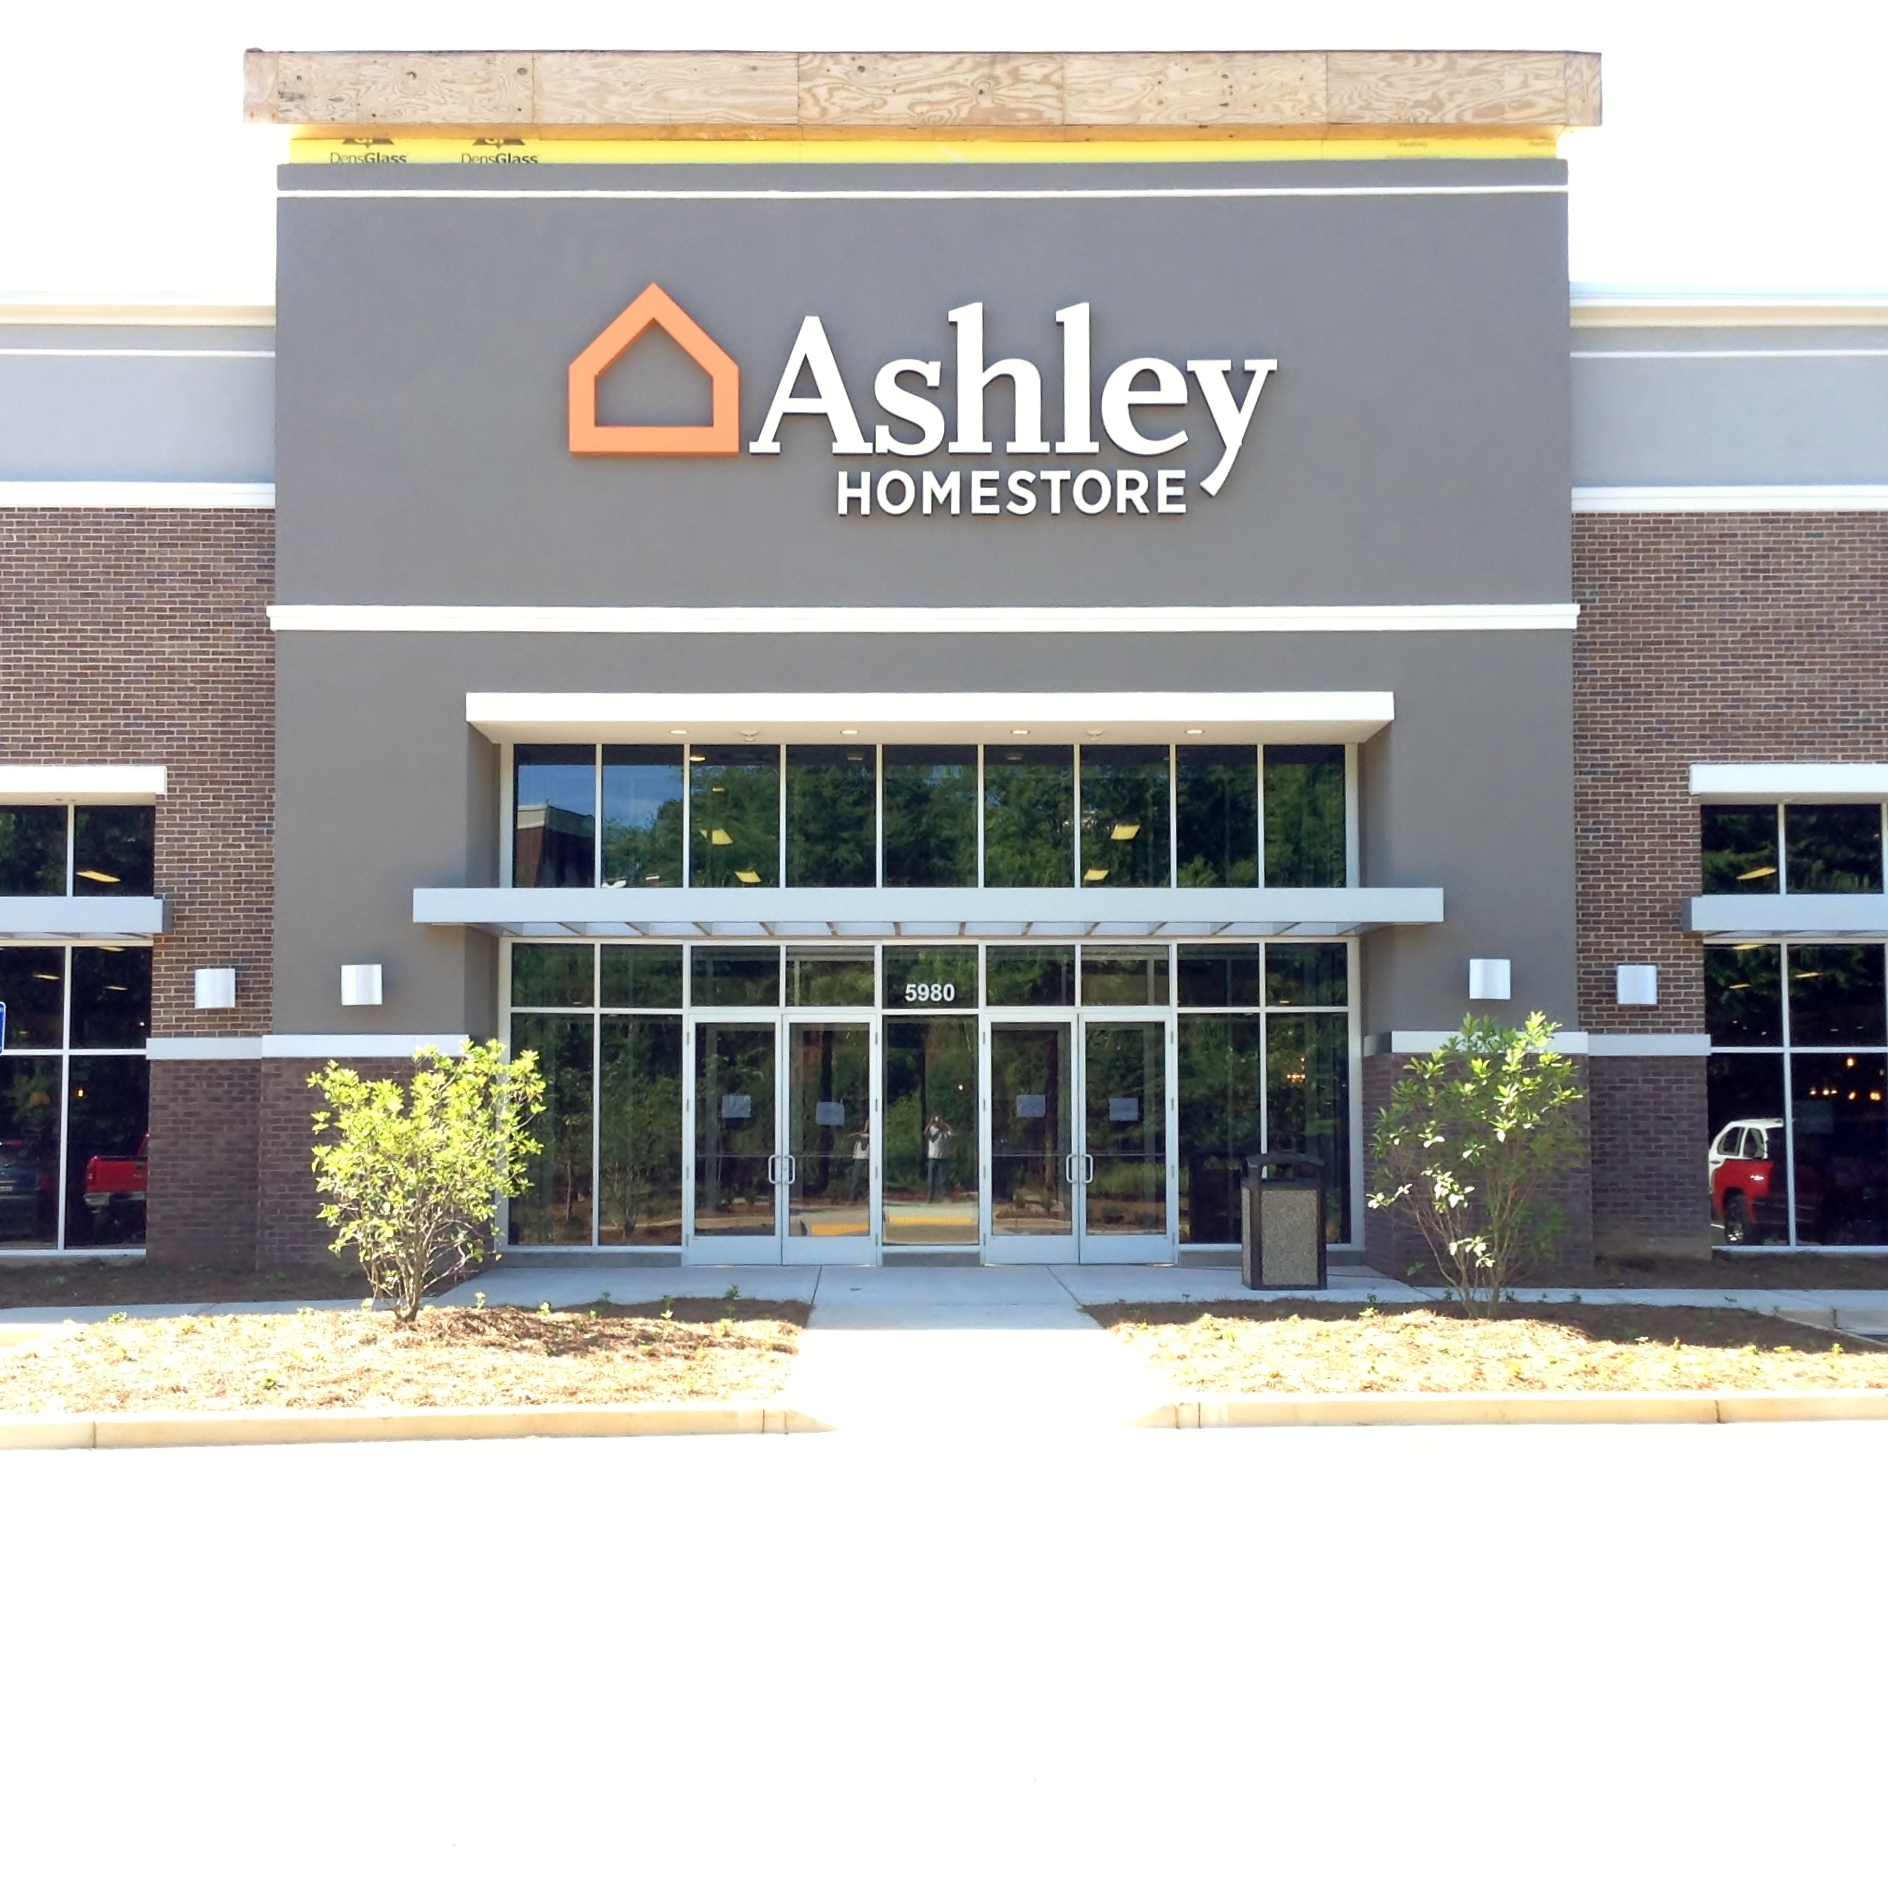 Ashley Furniture Northpointe Alpharetta Ga Ccs Image Group